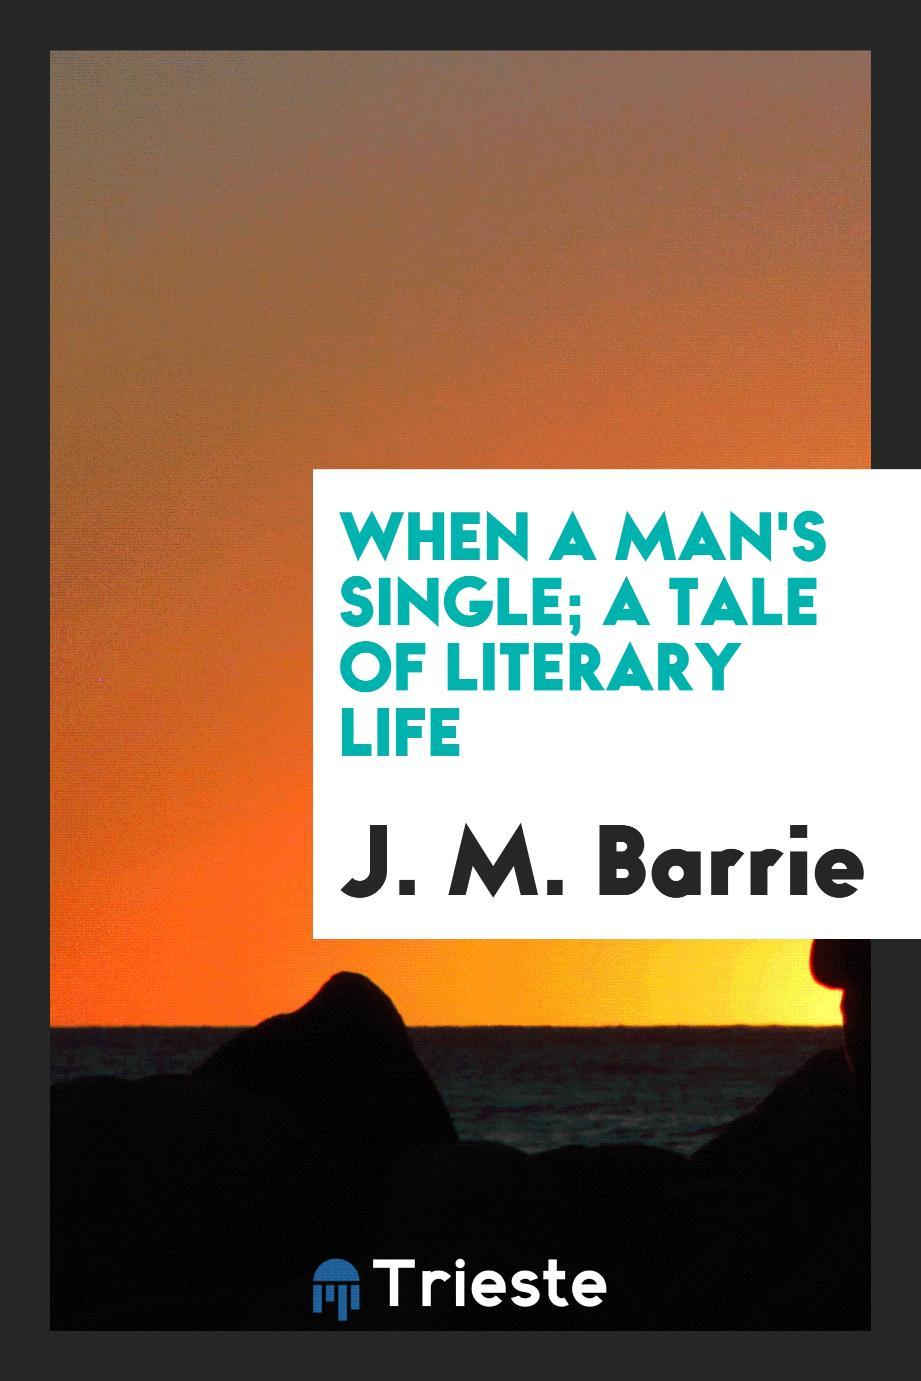 When a man's single; a tale of literary life